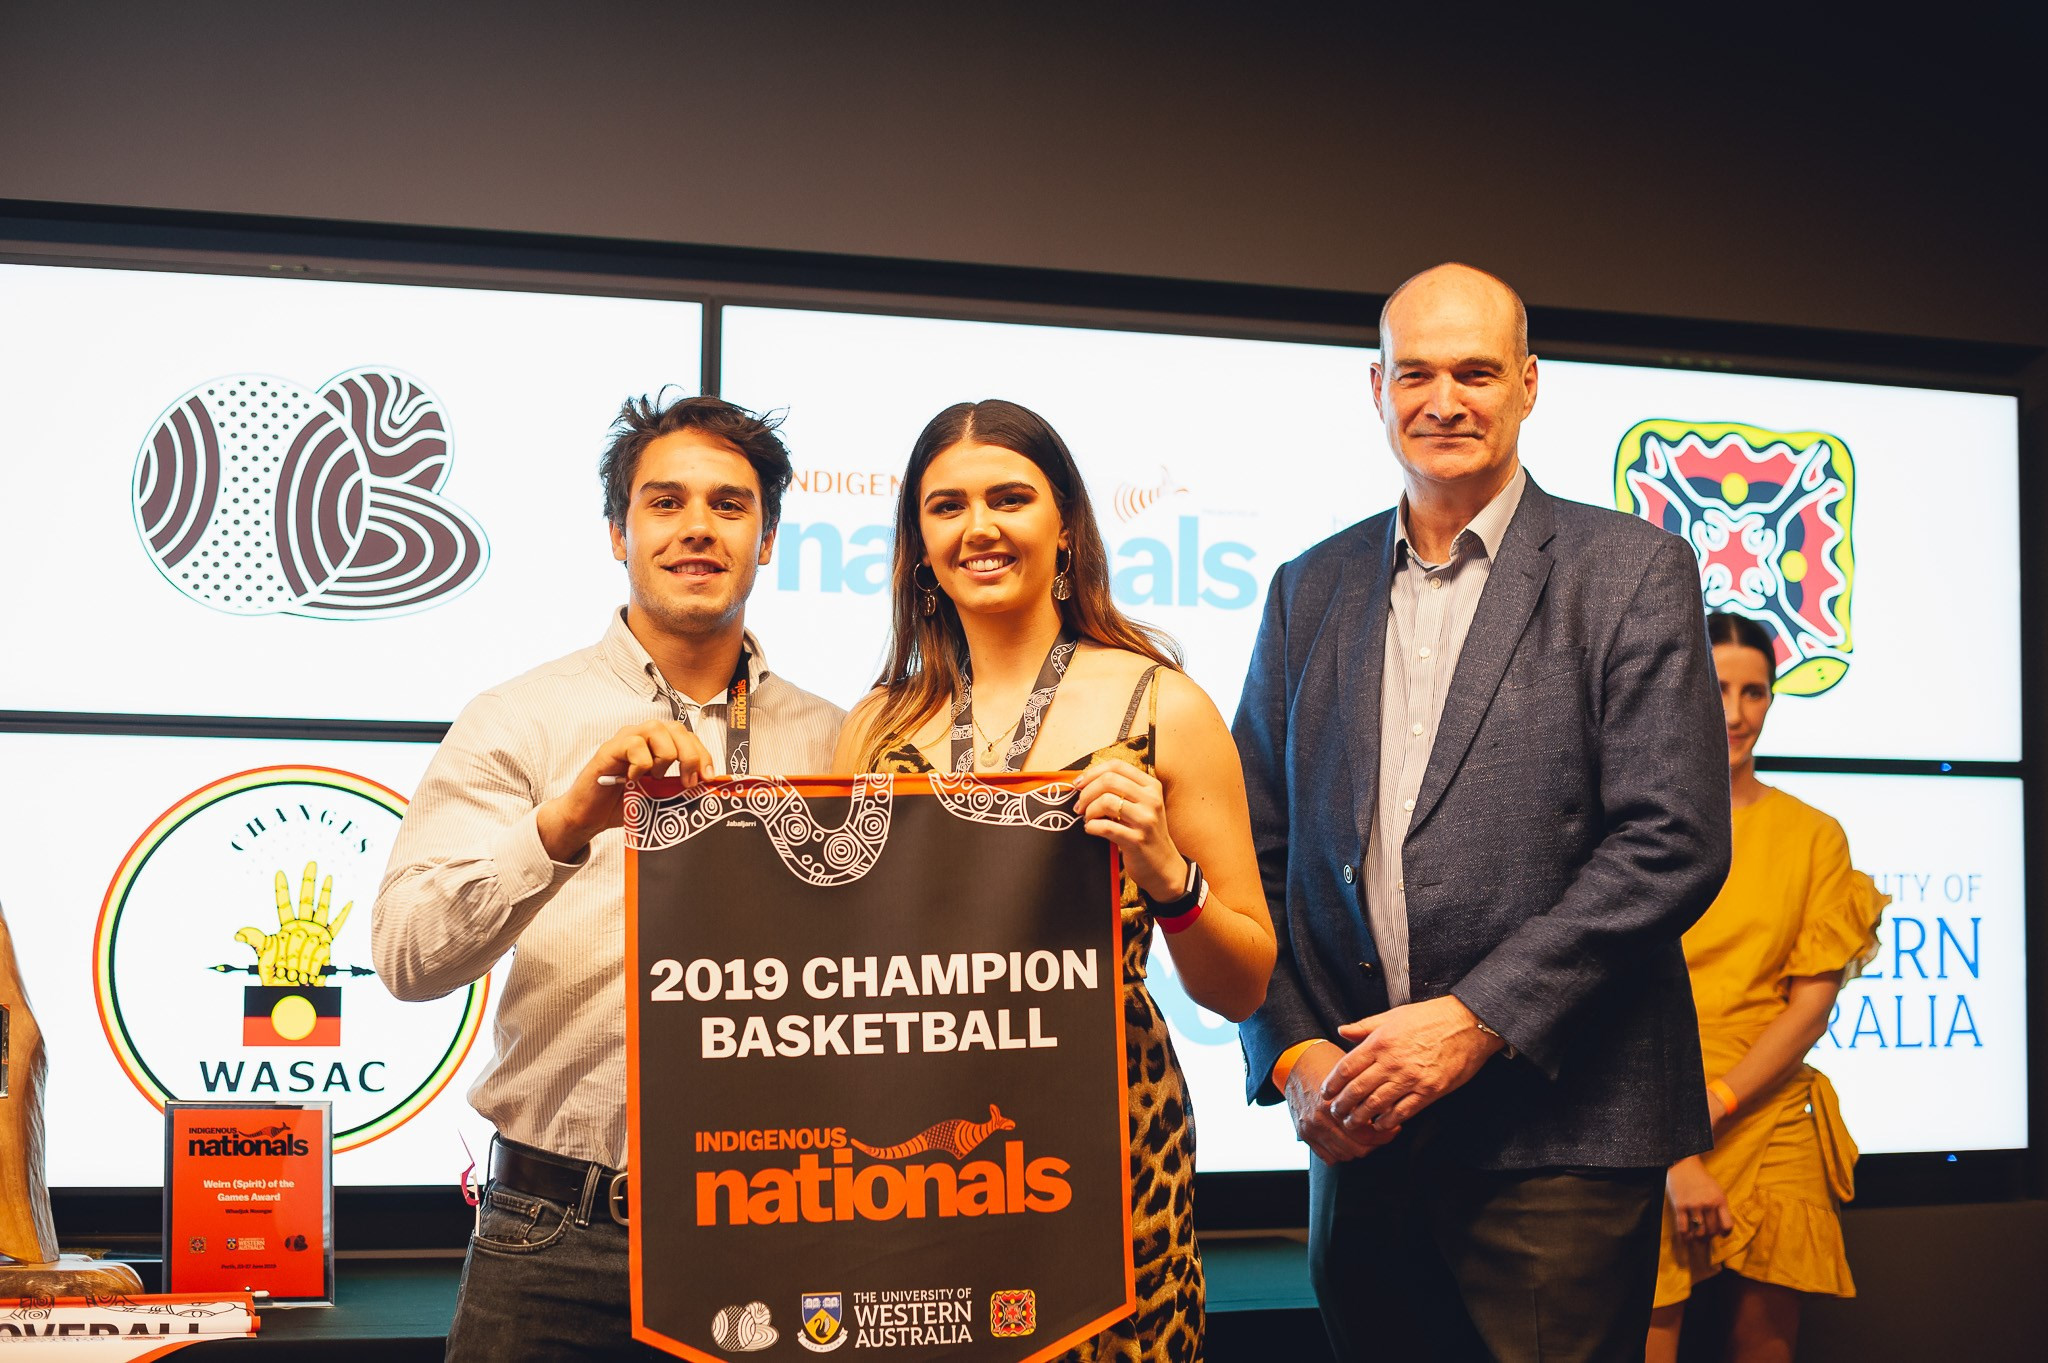 Competitions in mixed basketball, netball, touch football and volleyball take place at the Indigenous Nationals ©Indigenous Nationals